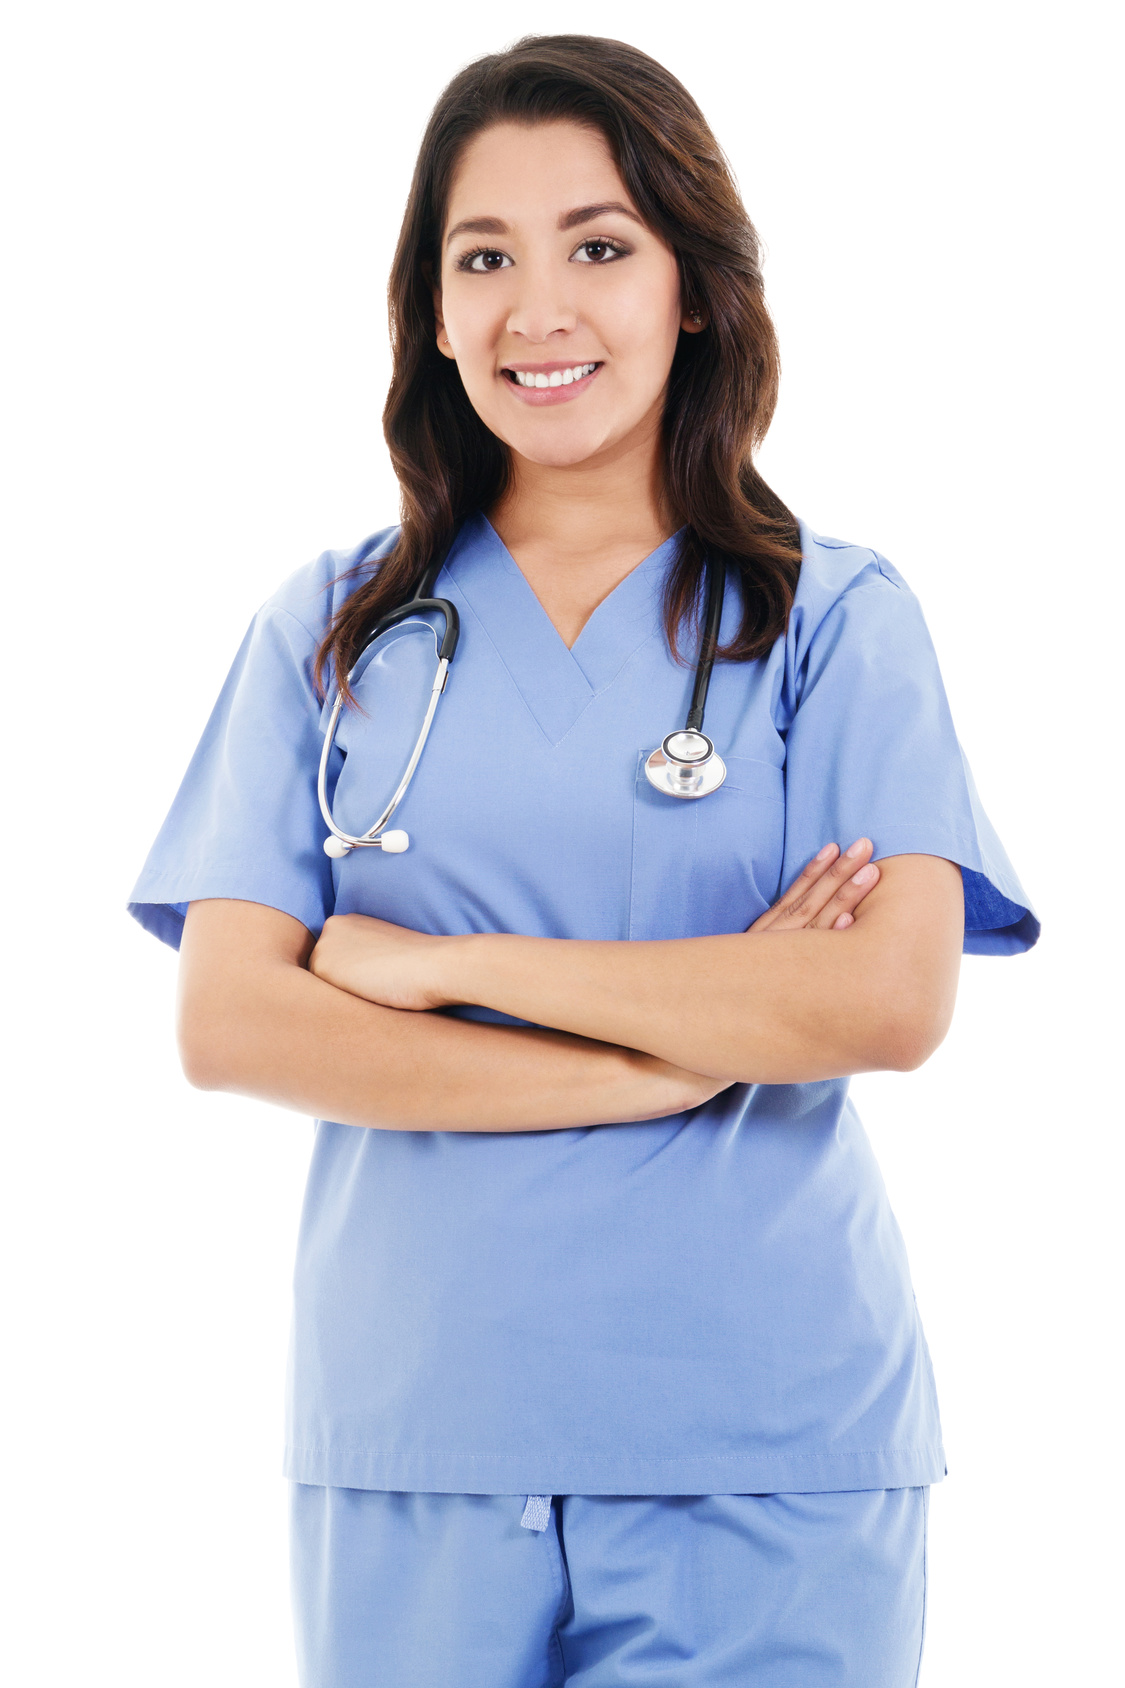 Nursing Uniforms and Medical Scrubs - Shop our collection for Branded Medical Uniforms, Nurses Scrubs, Lab coats, Scrub Sets and Much More. Lowest Price Guaranteed! Free Shipping!!